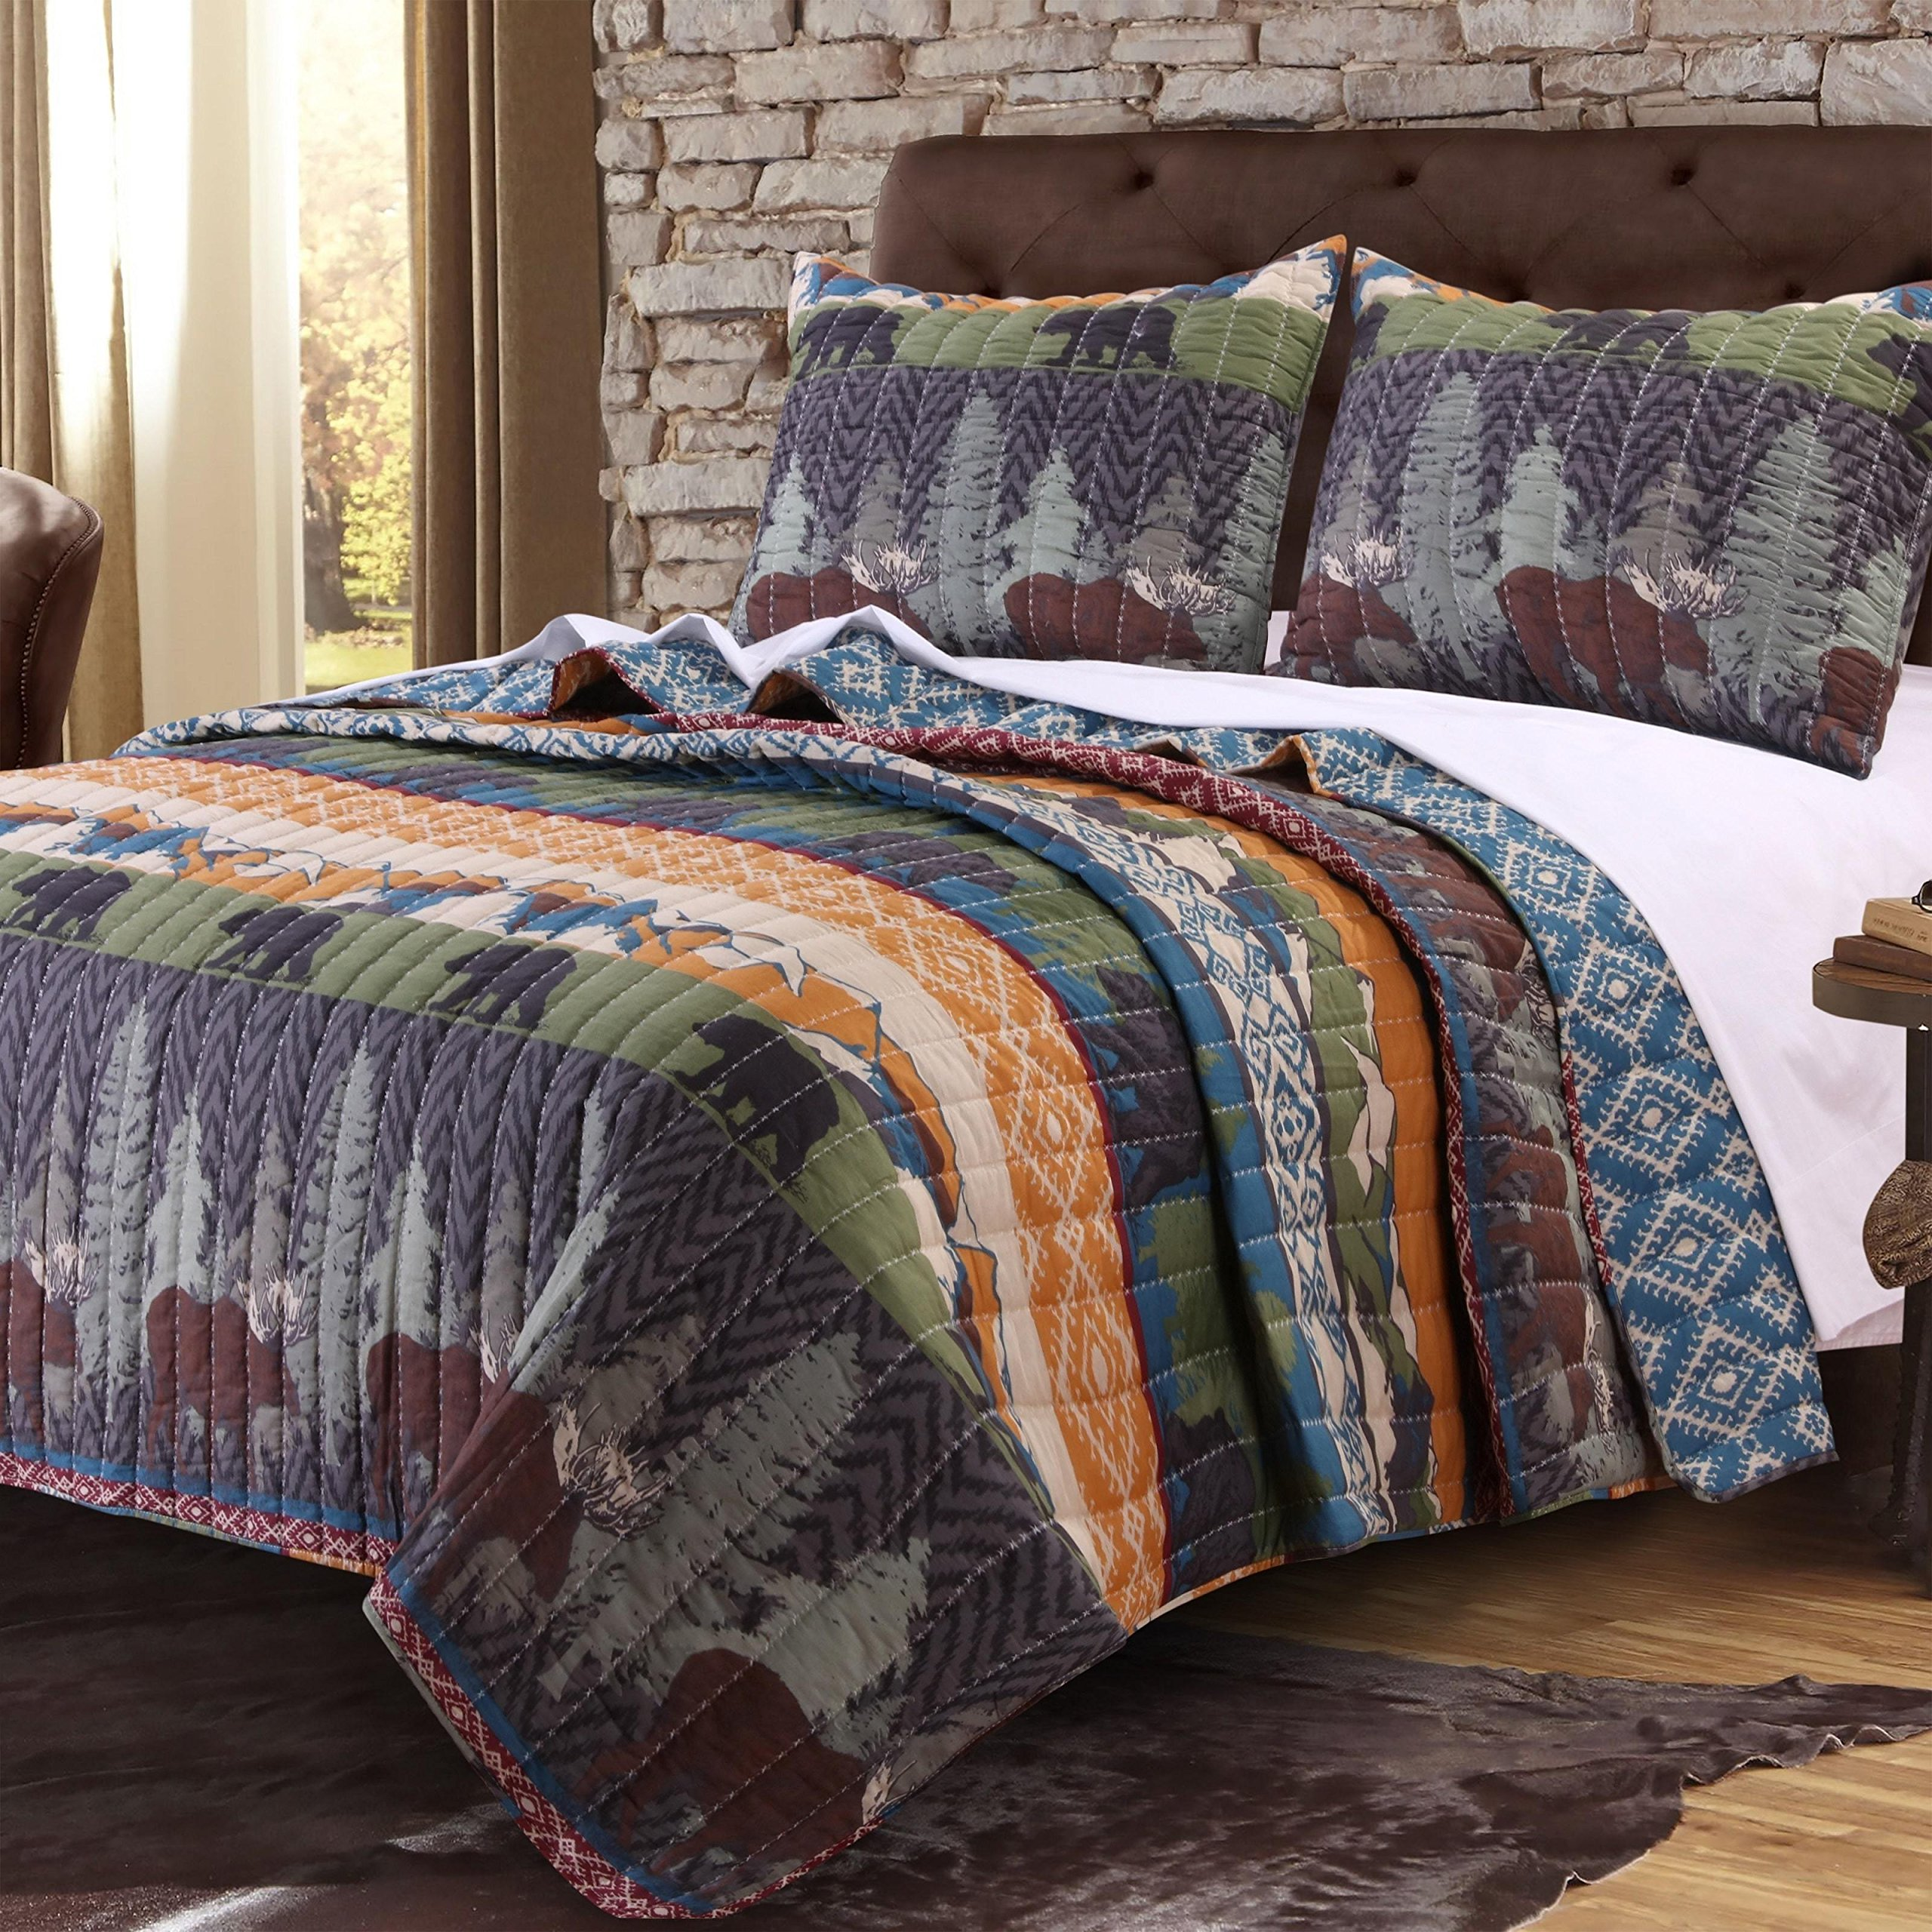 3 Piece Beautiful Blue Green Orange Grey Full Queen Quilt Set, Rustic Cabin Wildlife Bears Pattern Reversible Themed Bedding Animal Lodge Cottage Nature Outdoors Forest Wild Wilderness Trees, Cotton